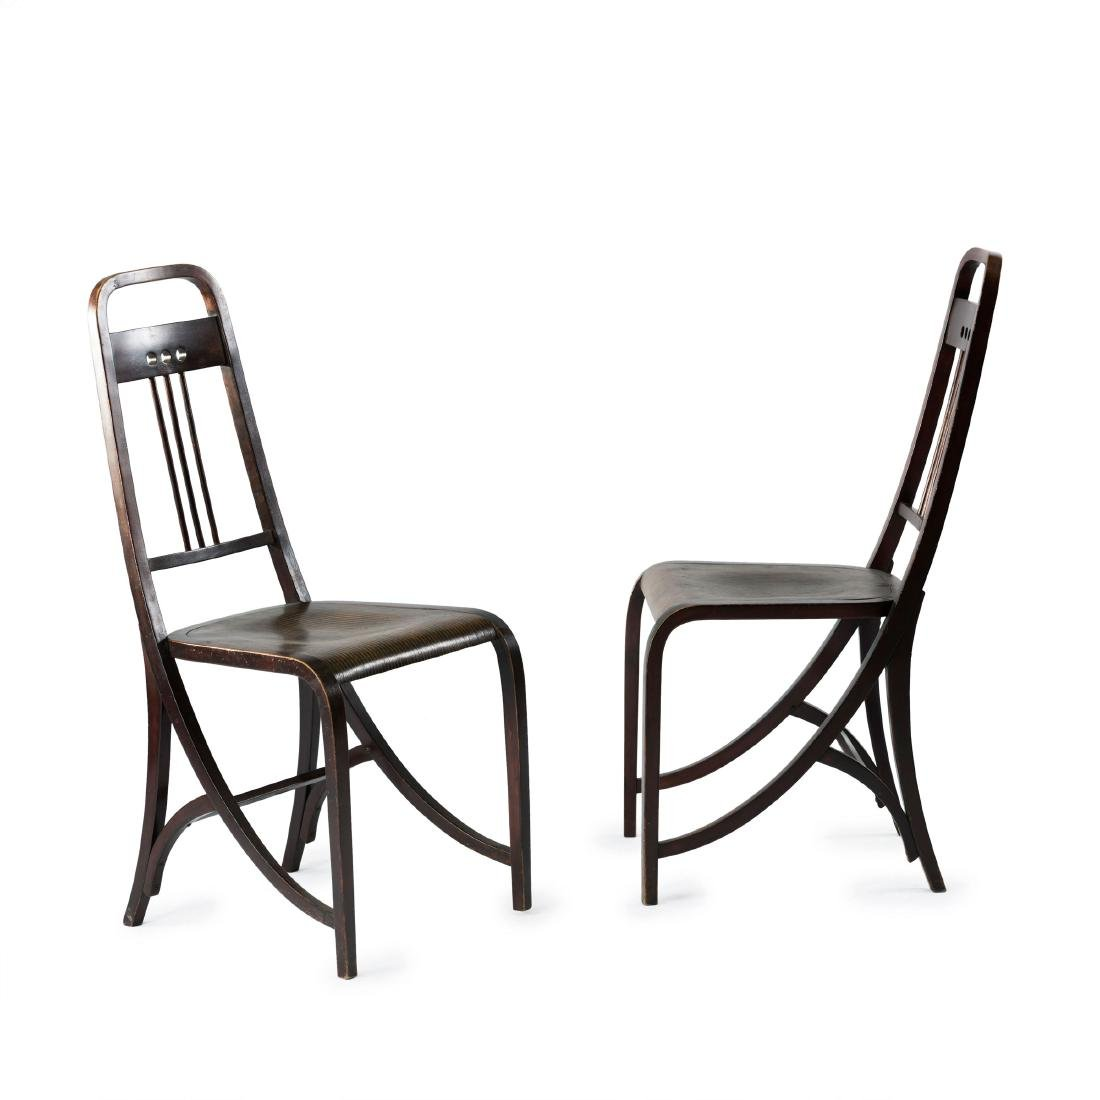 Two '511' chairs, c1905